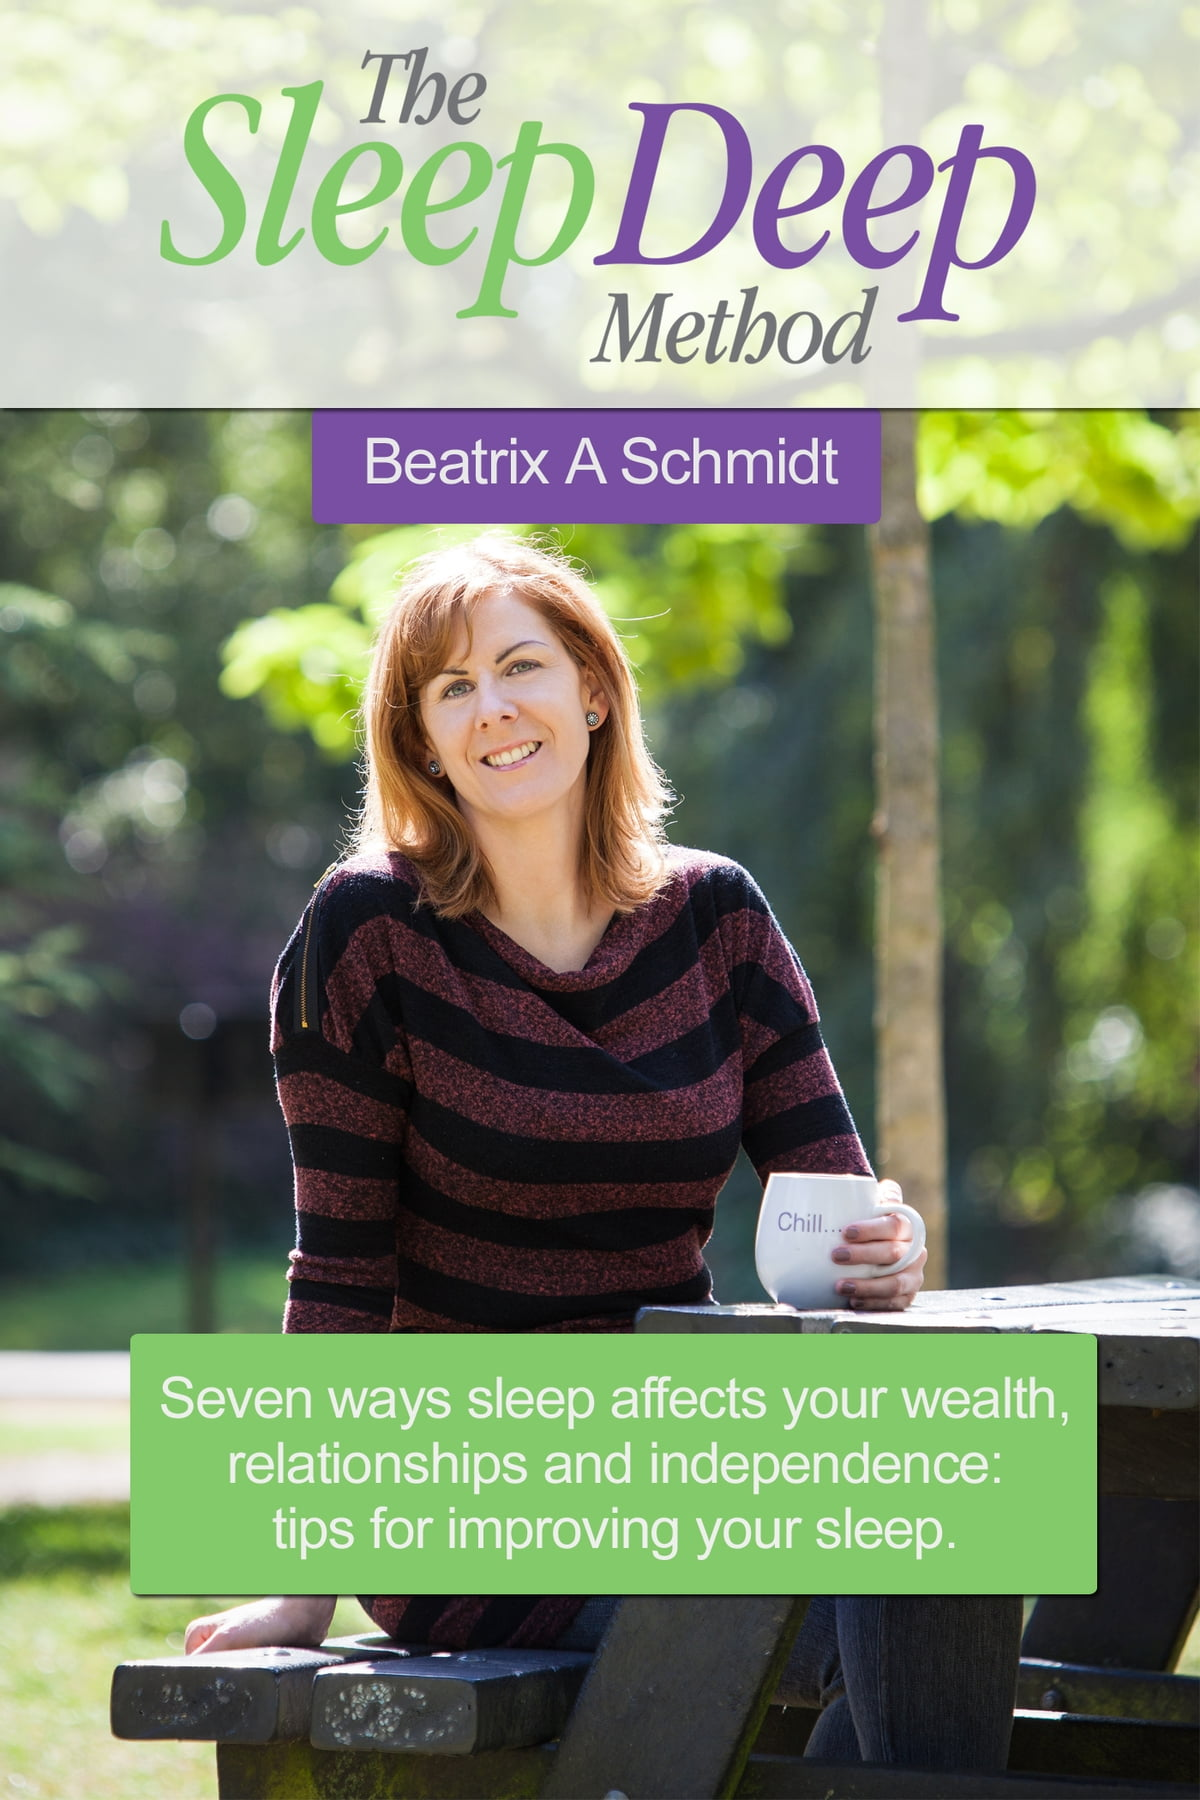 The sleep deep method ebook by beatrix a schmidt 9781483540429 the sleep deep method ebook by beatrix a schmidt 9781483540429 rakuten kobo fandeluxe Ebook collections